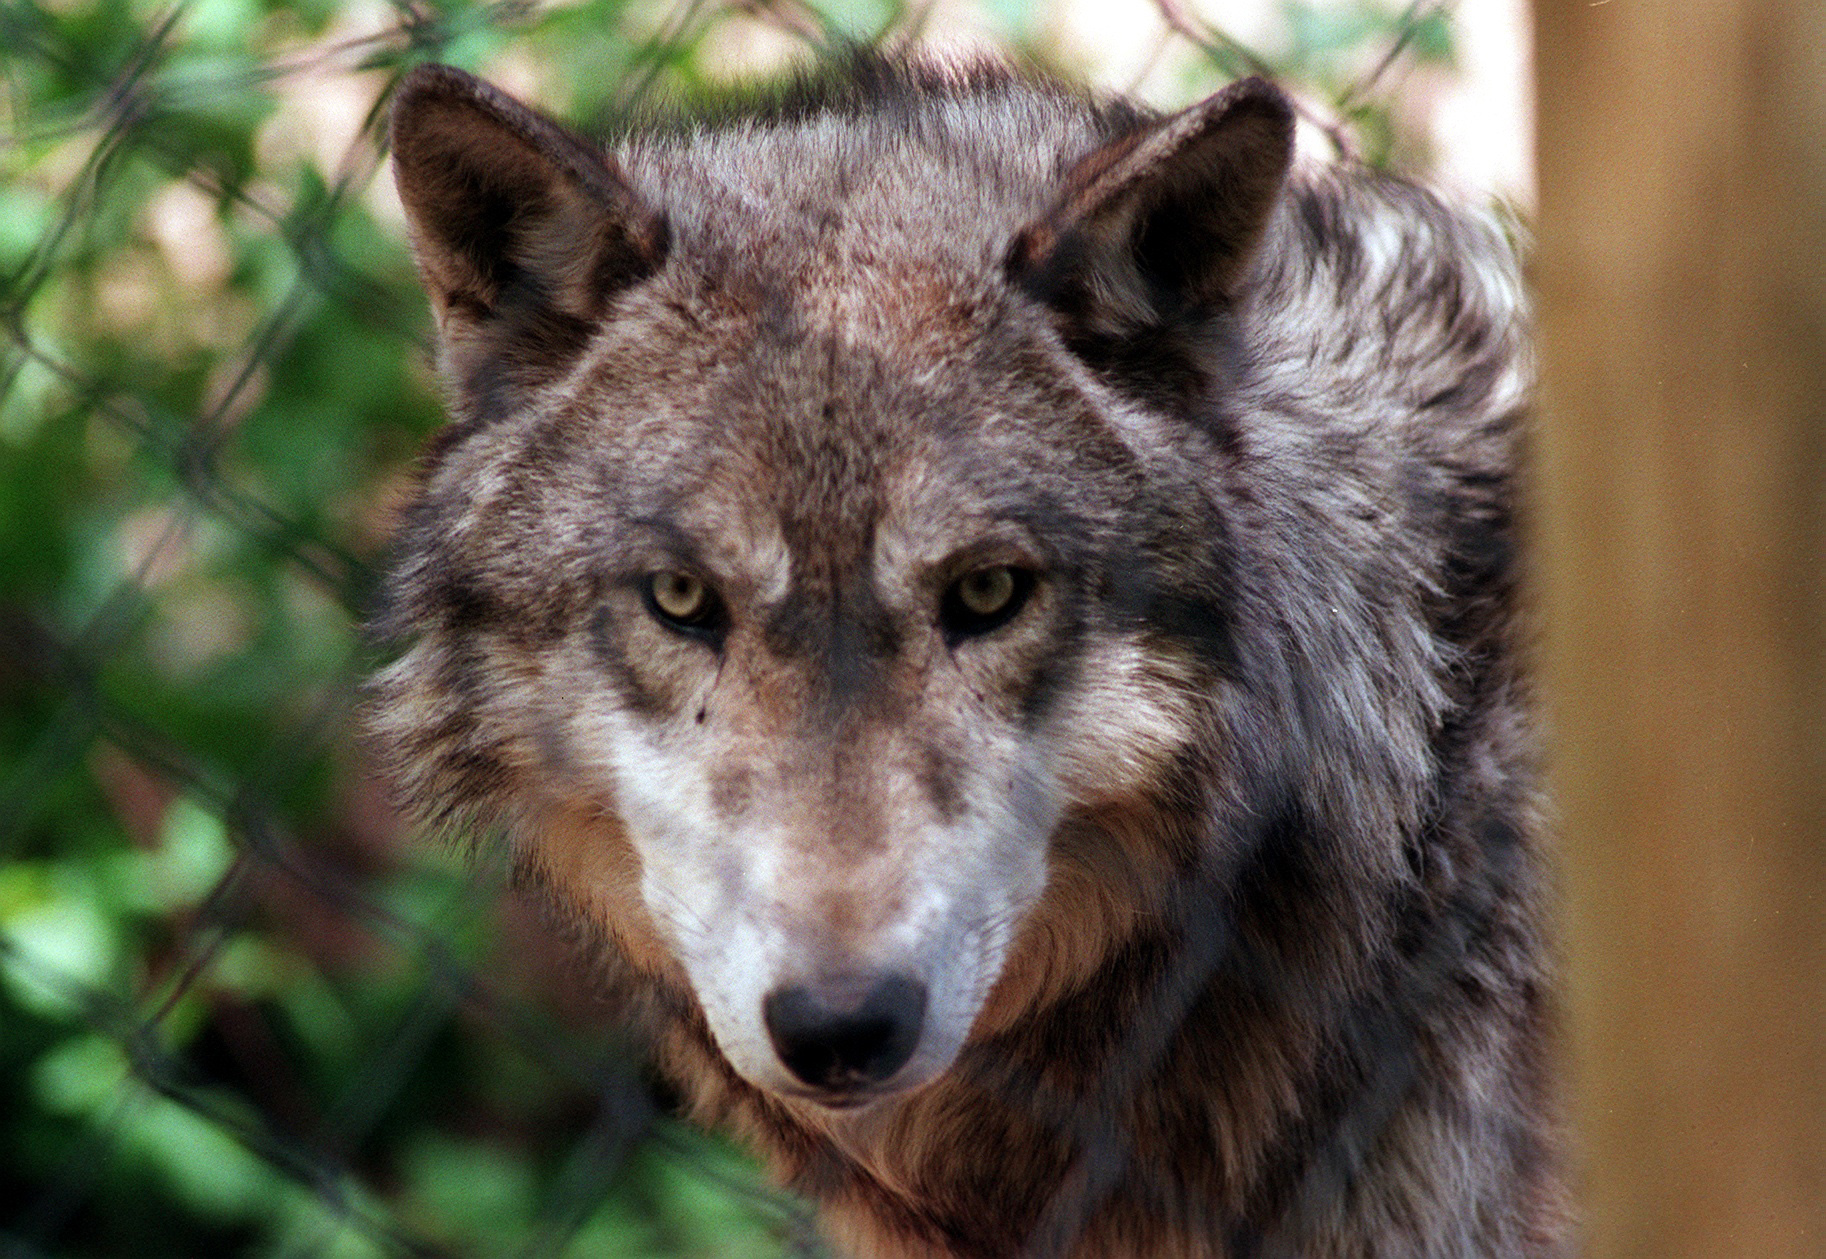 Luxurious California Wolves Colorado Sanctuary Offers Safe Home To Abandoned Denver Post Colorado Sanctuary Offers Safe Home To Abandoned Wolves Sale Tennessee Sale bark post Wolves For Sale